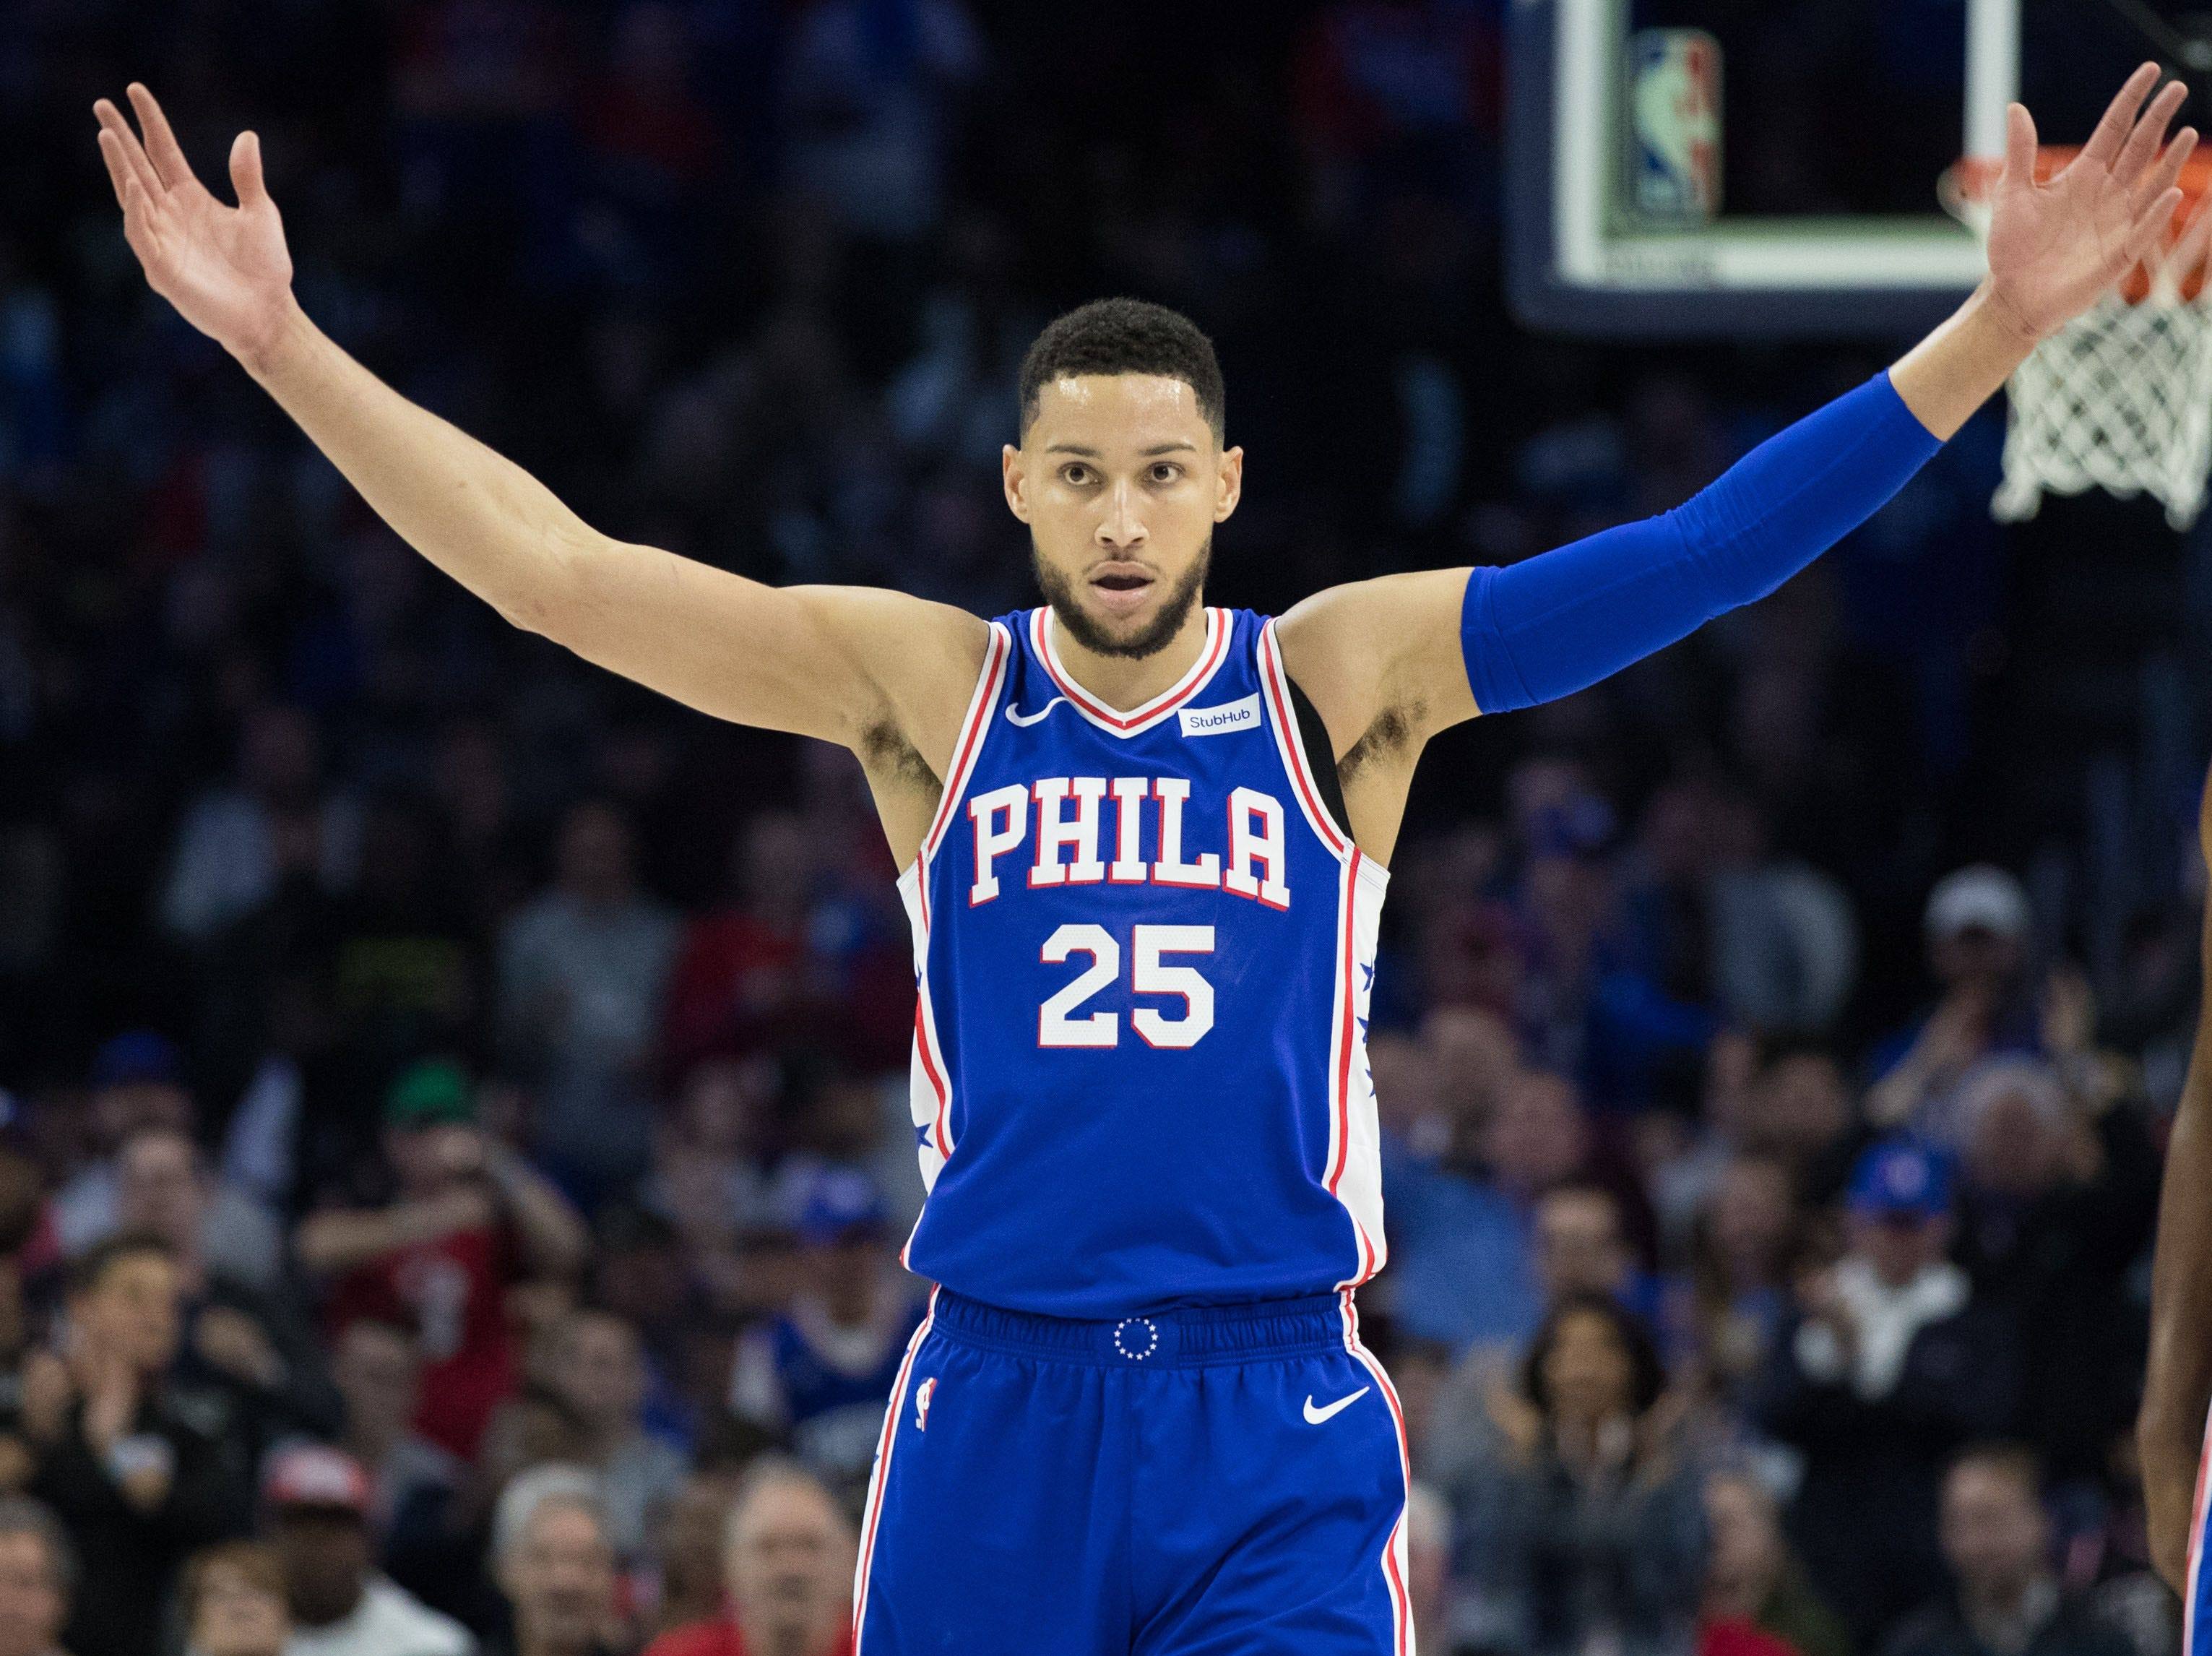 Apr 15, 2019; Philadelphia, PA, USA; Philadelphia 76ers guard Ben Simmons (25) reacts to the crowd after a score against the Brooklyn Nets during the first quarter in game two of the first round of the 2019 NBA Playoffs at Wells Fargo Center.